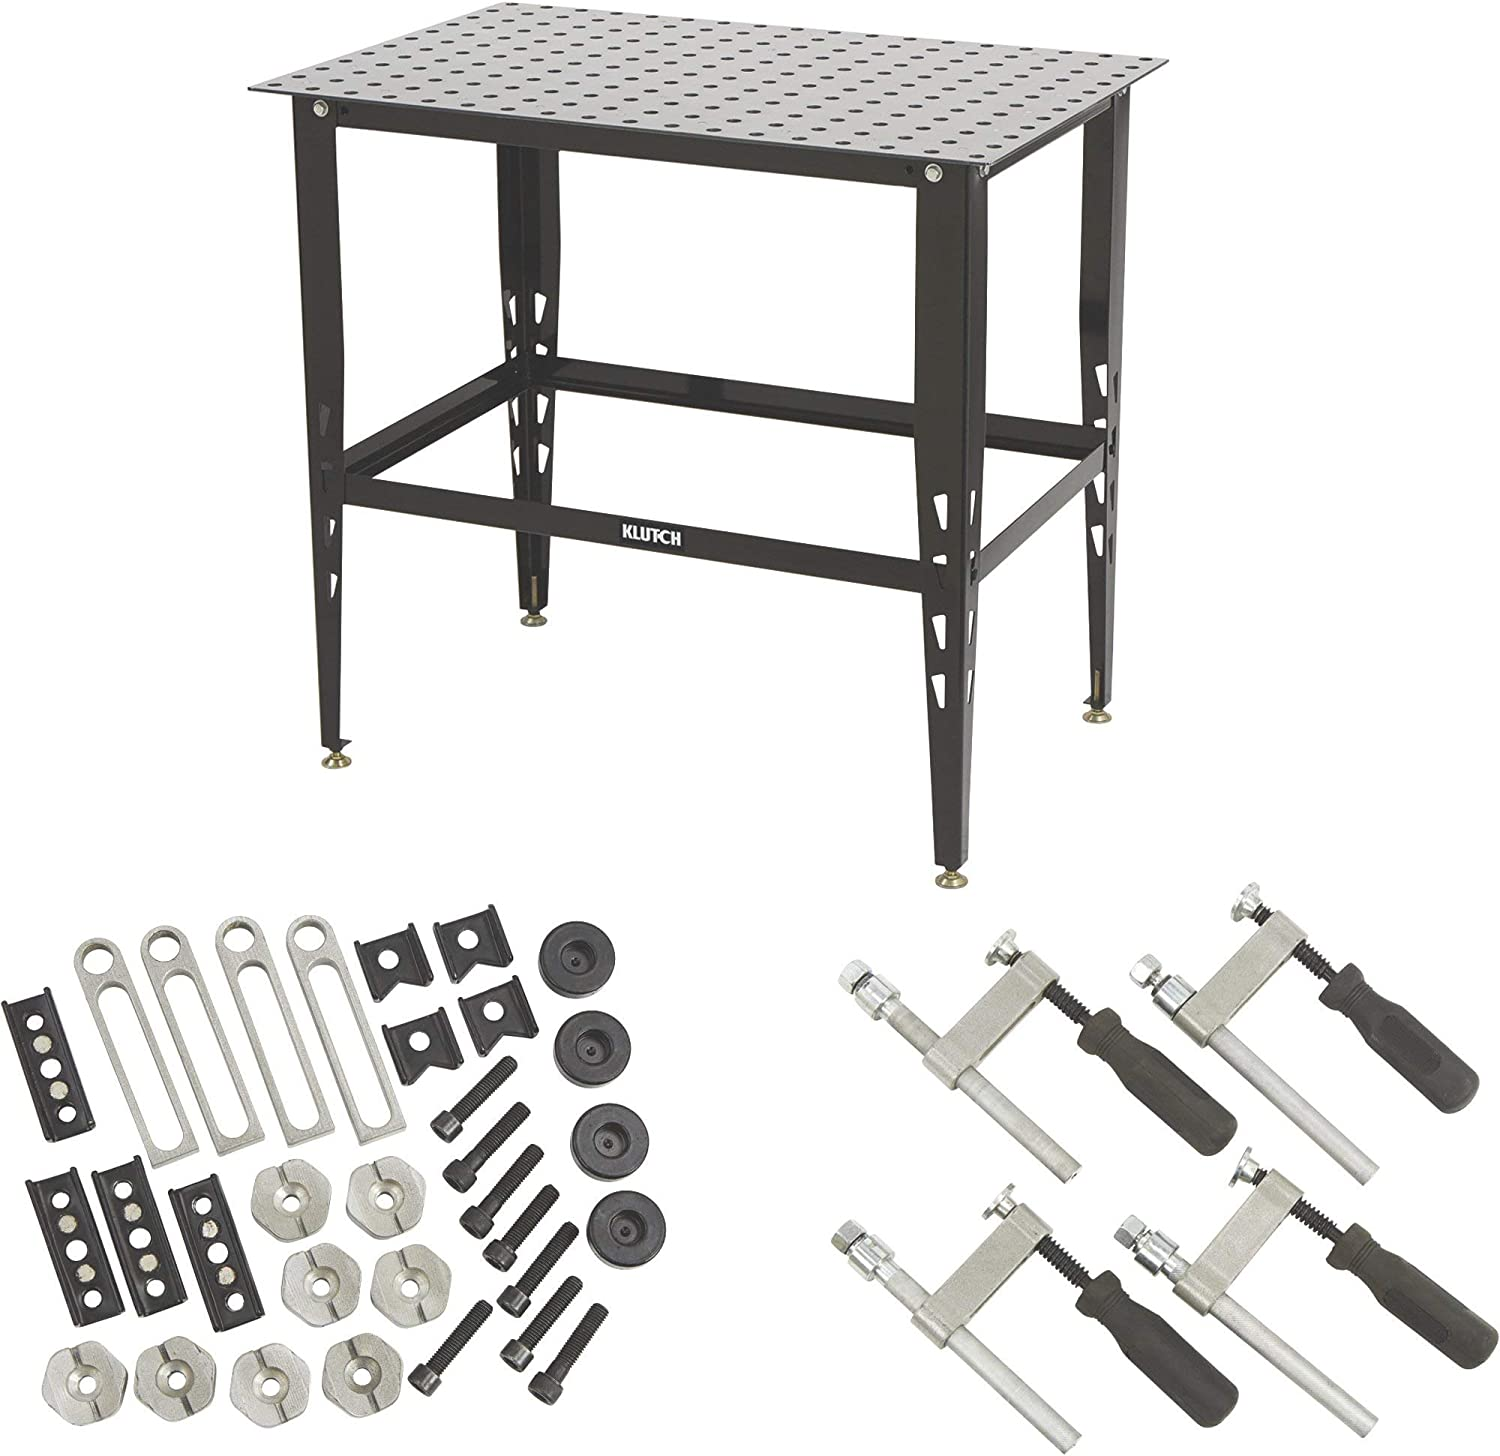 Klutch Steel Welding Table with Tool Kit - 36in.L x 24in.W x 33 1/4in.H - -